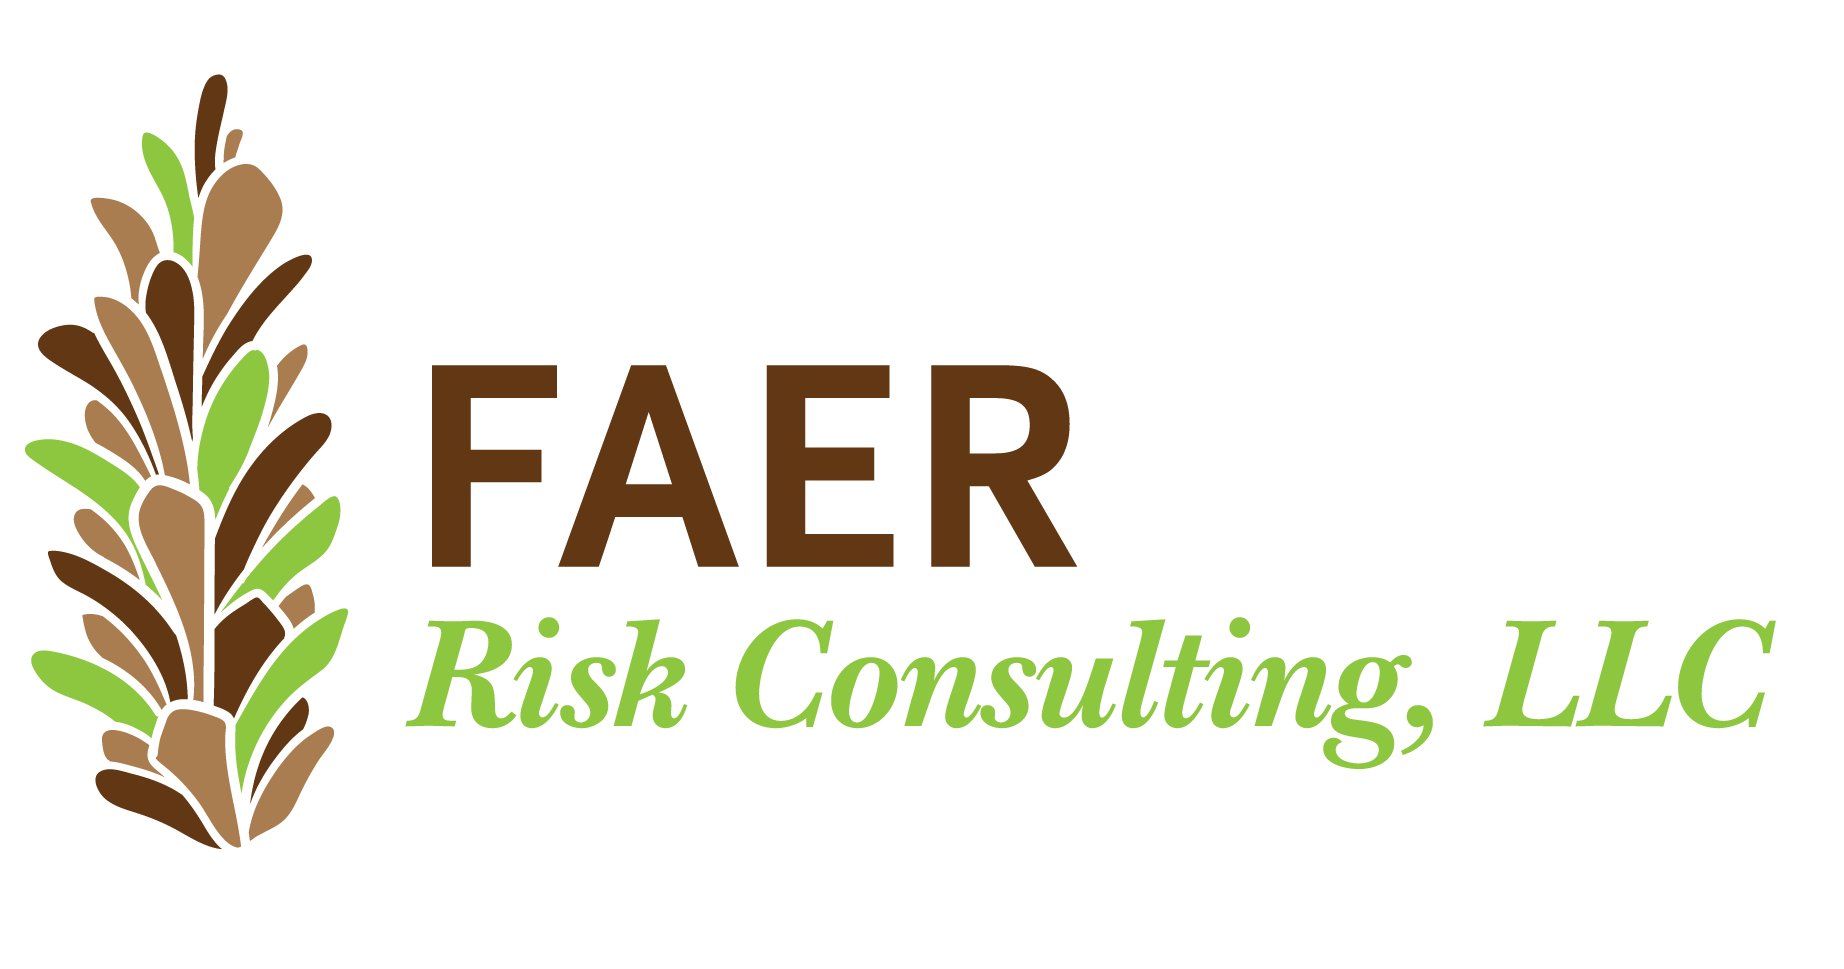 Faer Risk Consulting, LLC